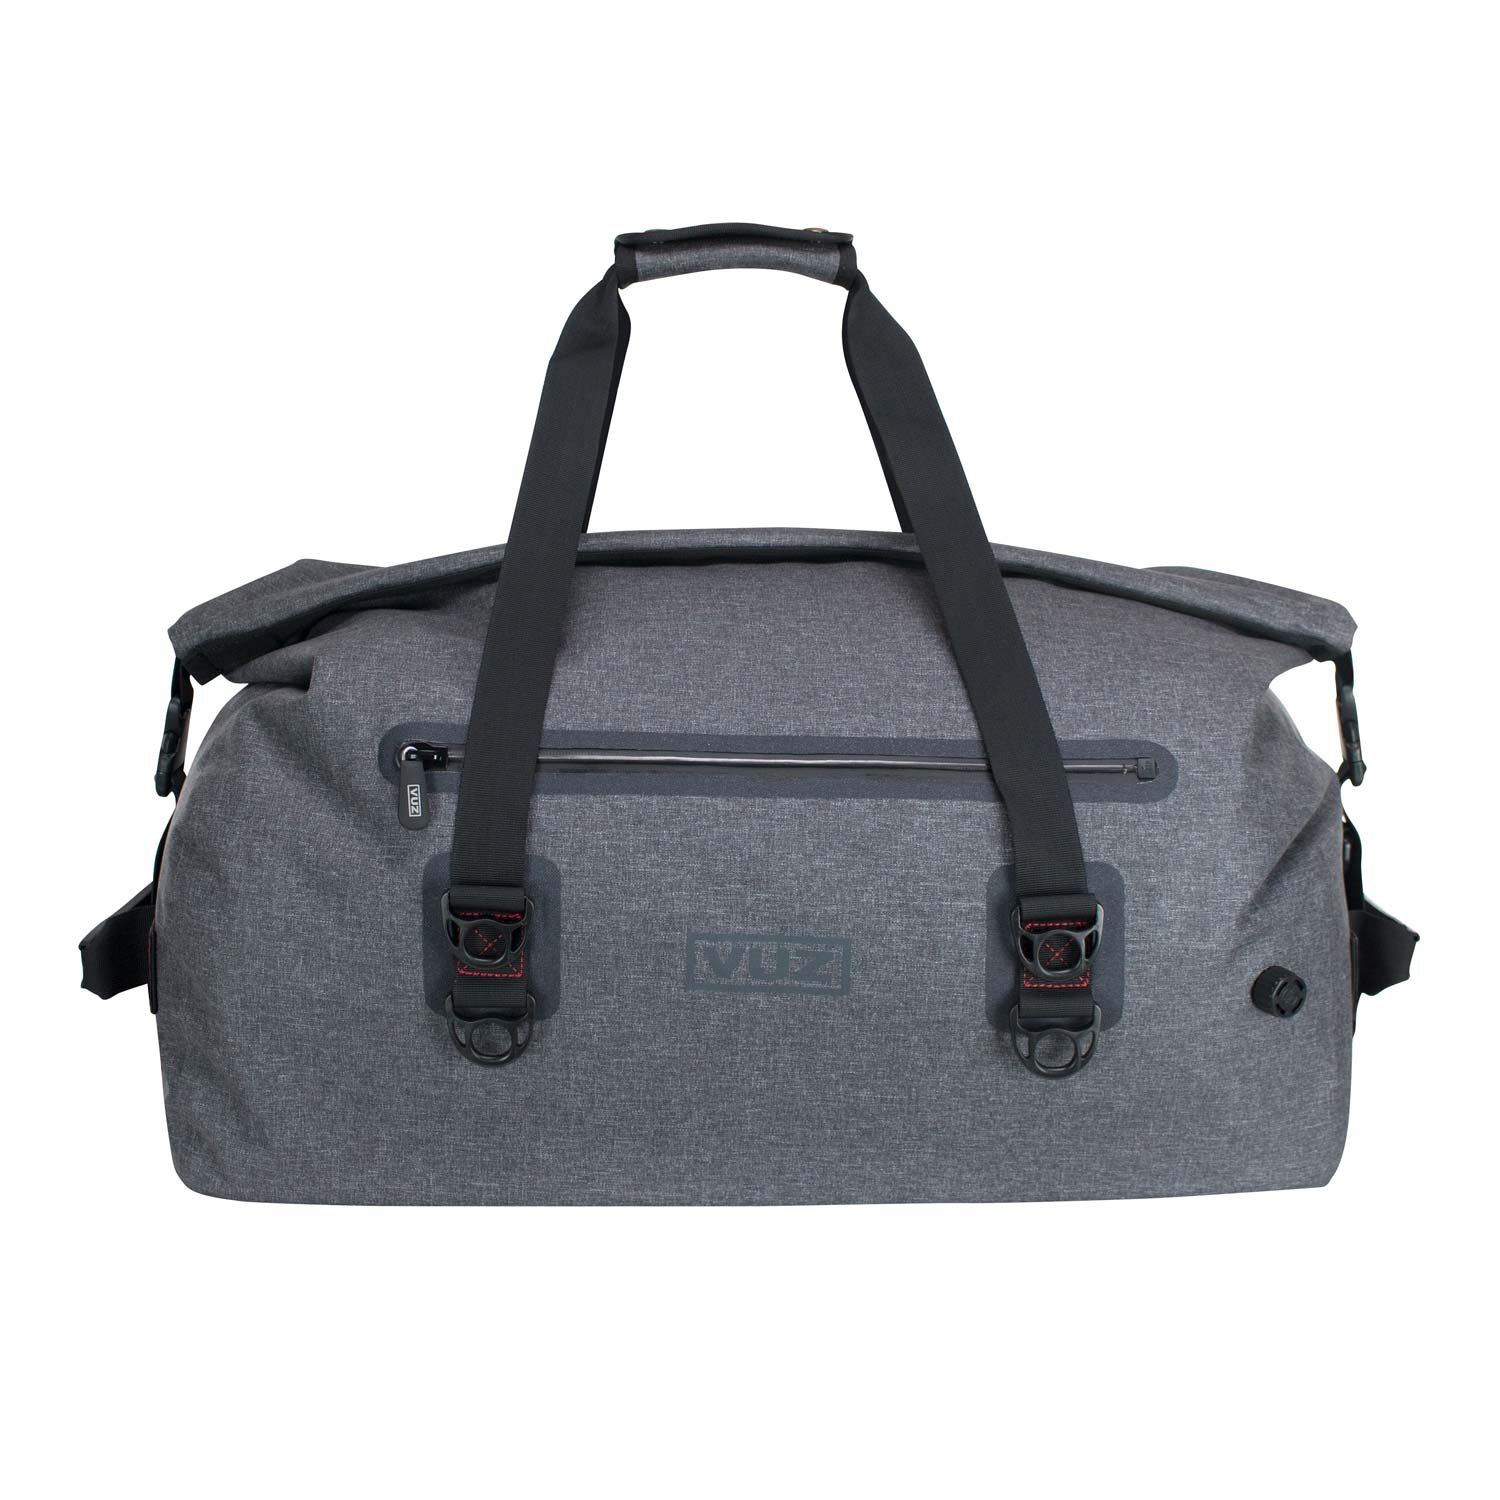 Amazon.com  Vuz Moto Premium Dry Duffle Bag 95fee2c73c8d9